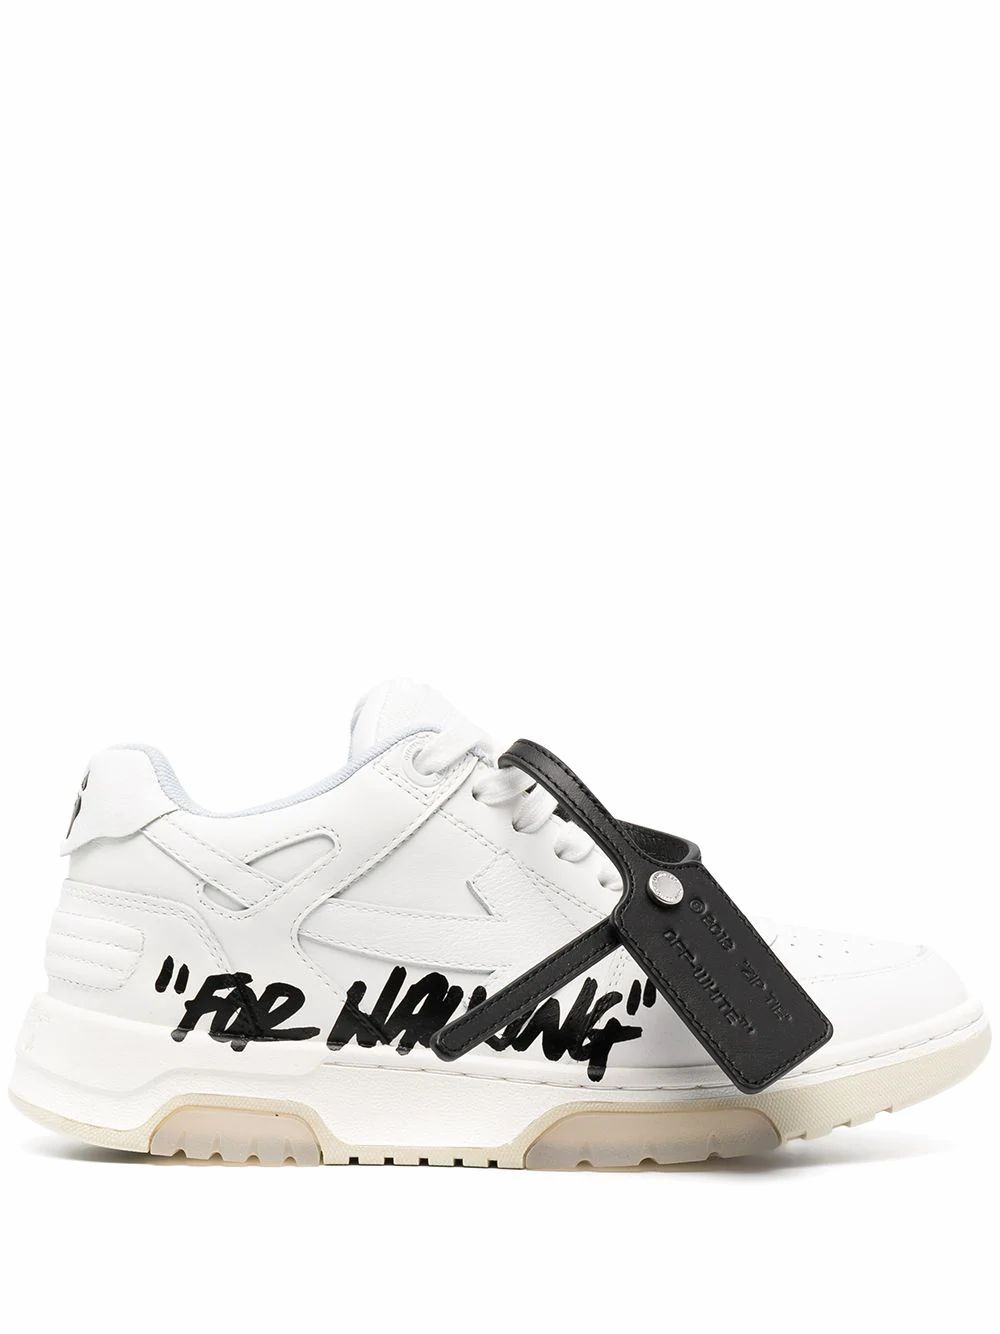 Off-White Leathers OFF-WHITE WOMEN'S OWIA259S21LEA0020140 WHITE LEATHER SNEAKERS